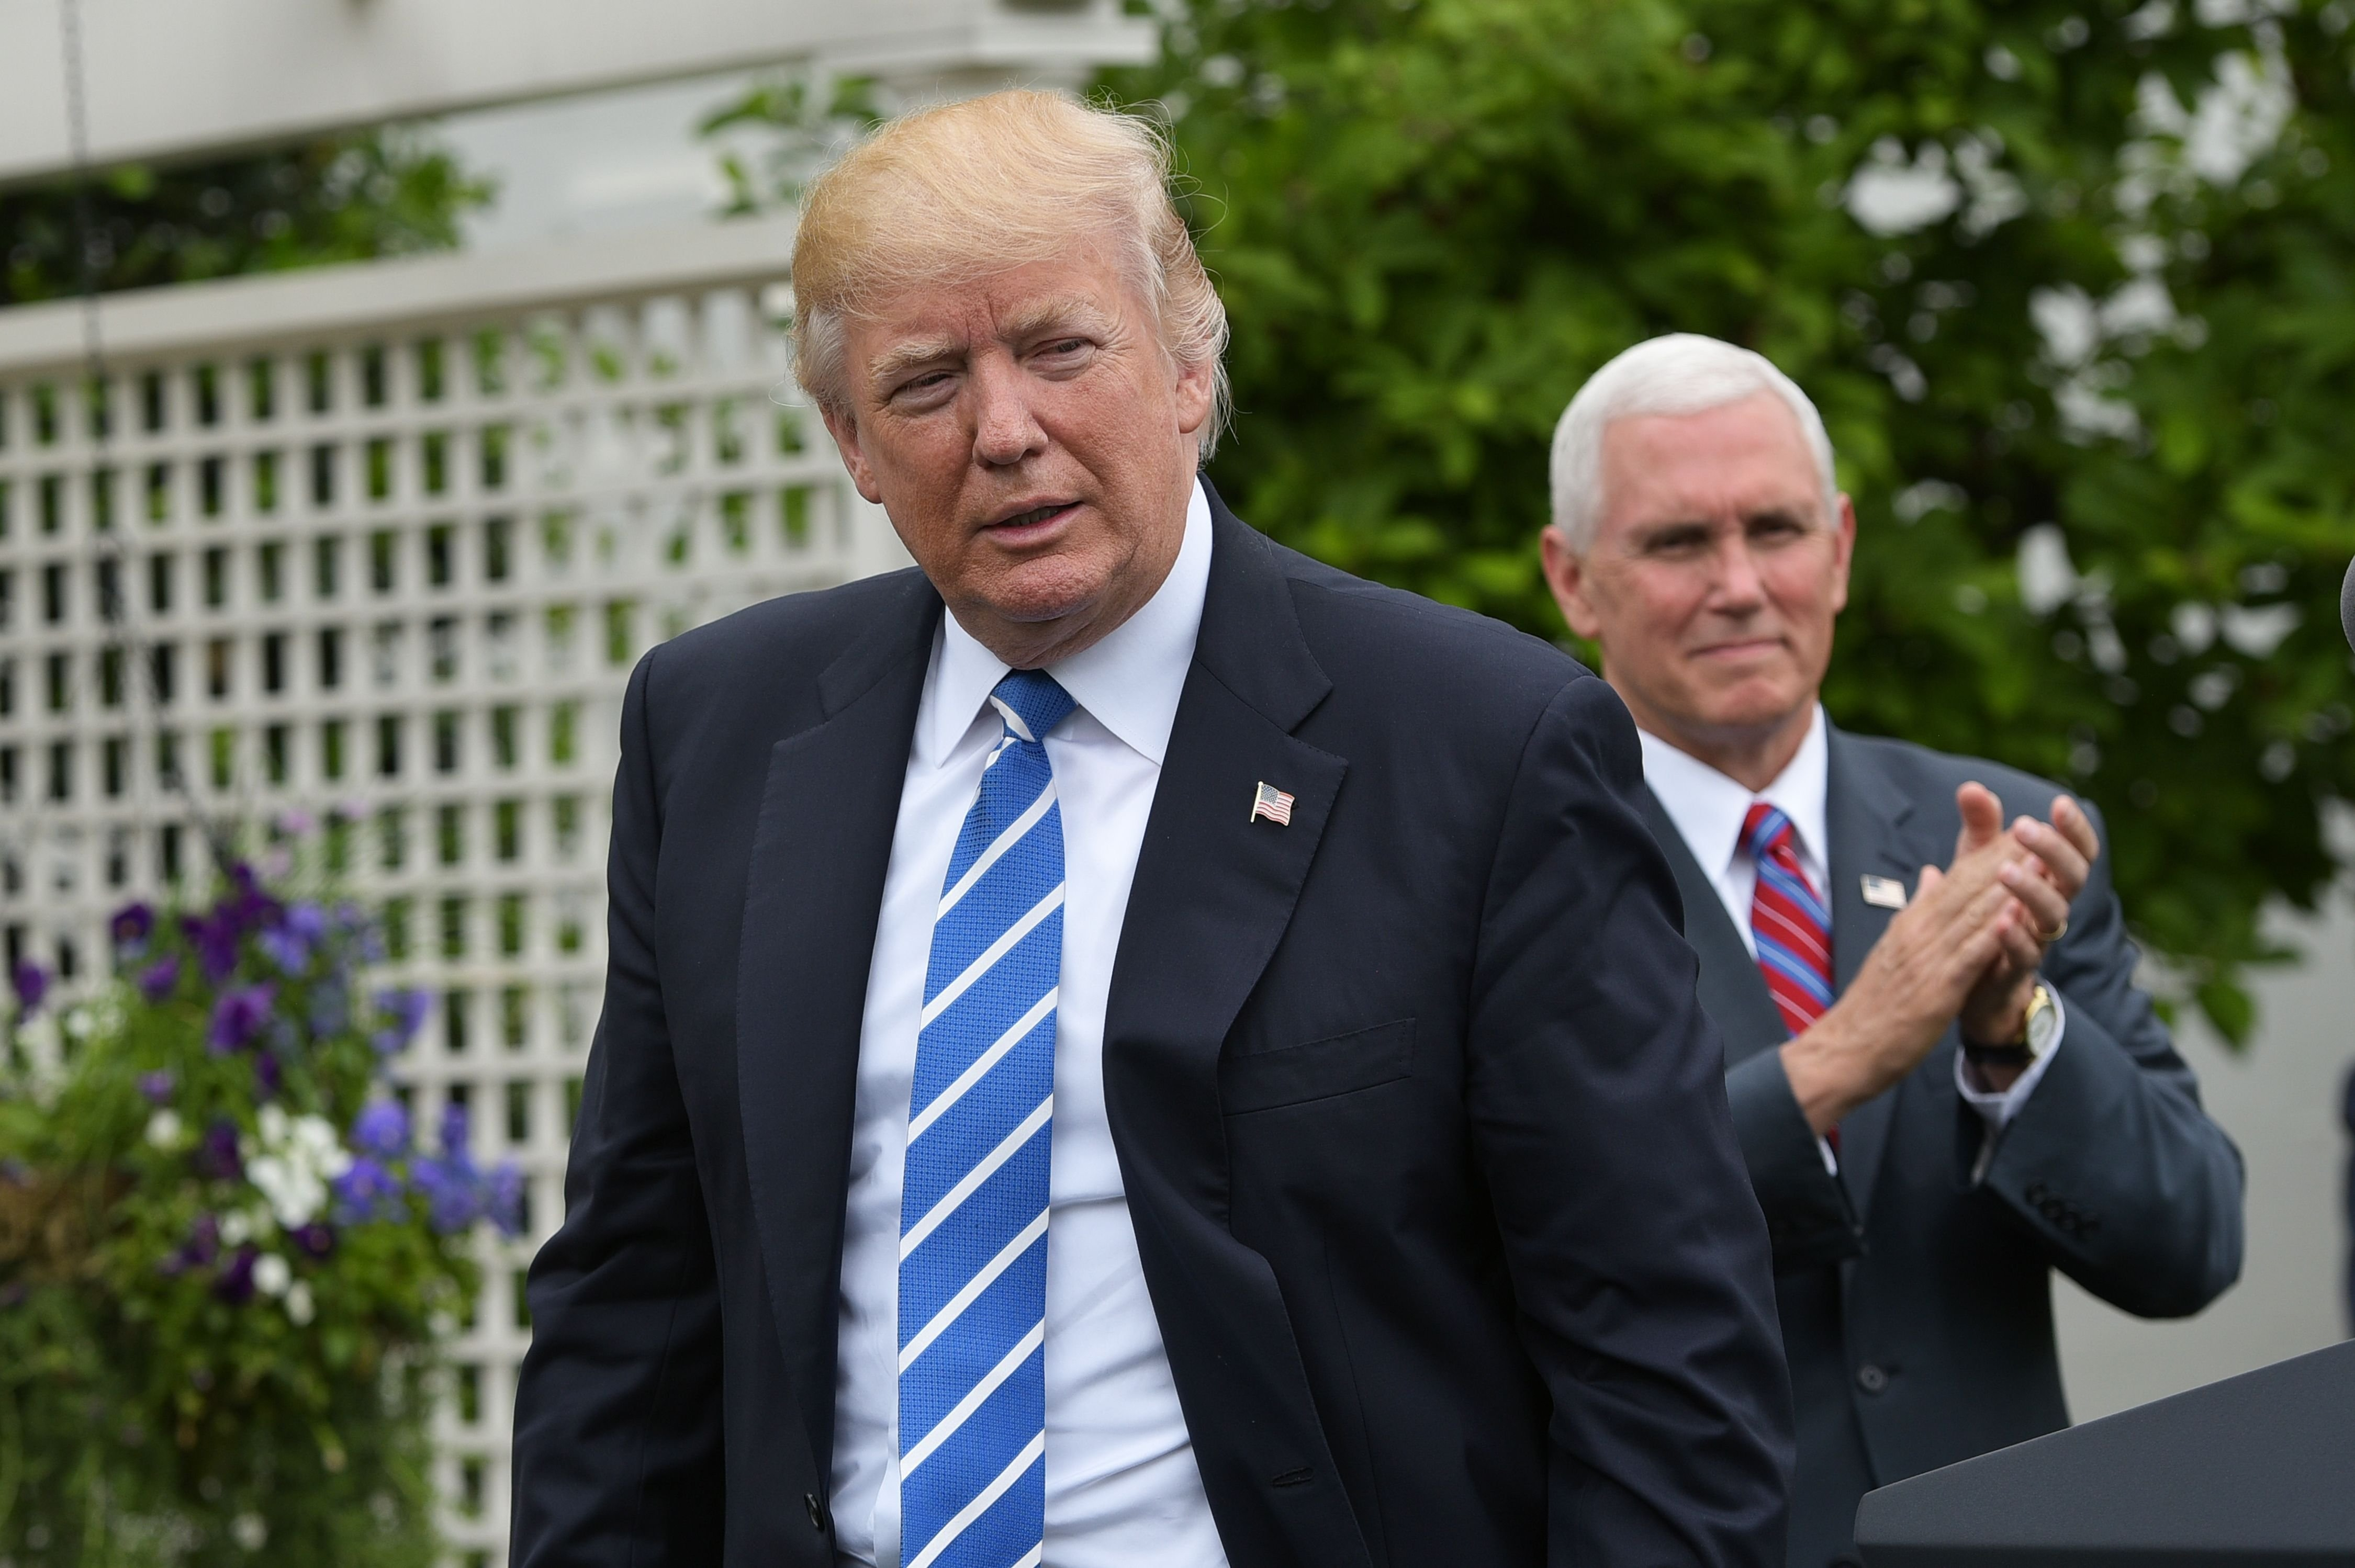 President Donald Trump during an event for the Independent Community Bankers Association in the Kennedy Garden of the the White House on May 1, 2017 in Washington